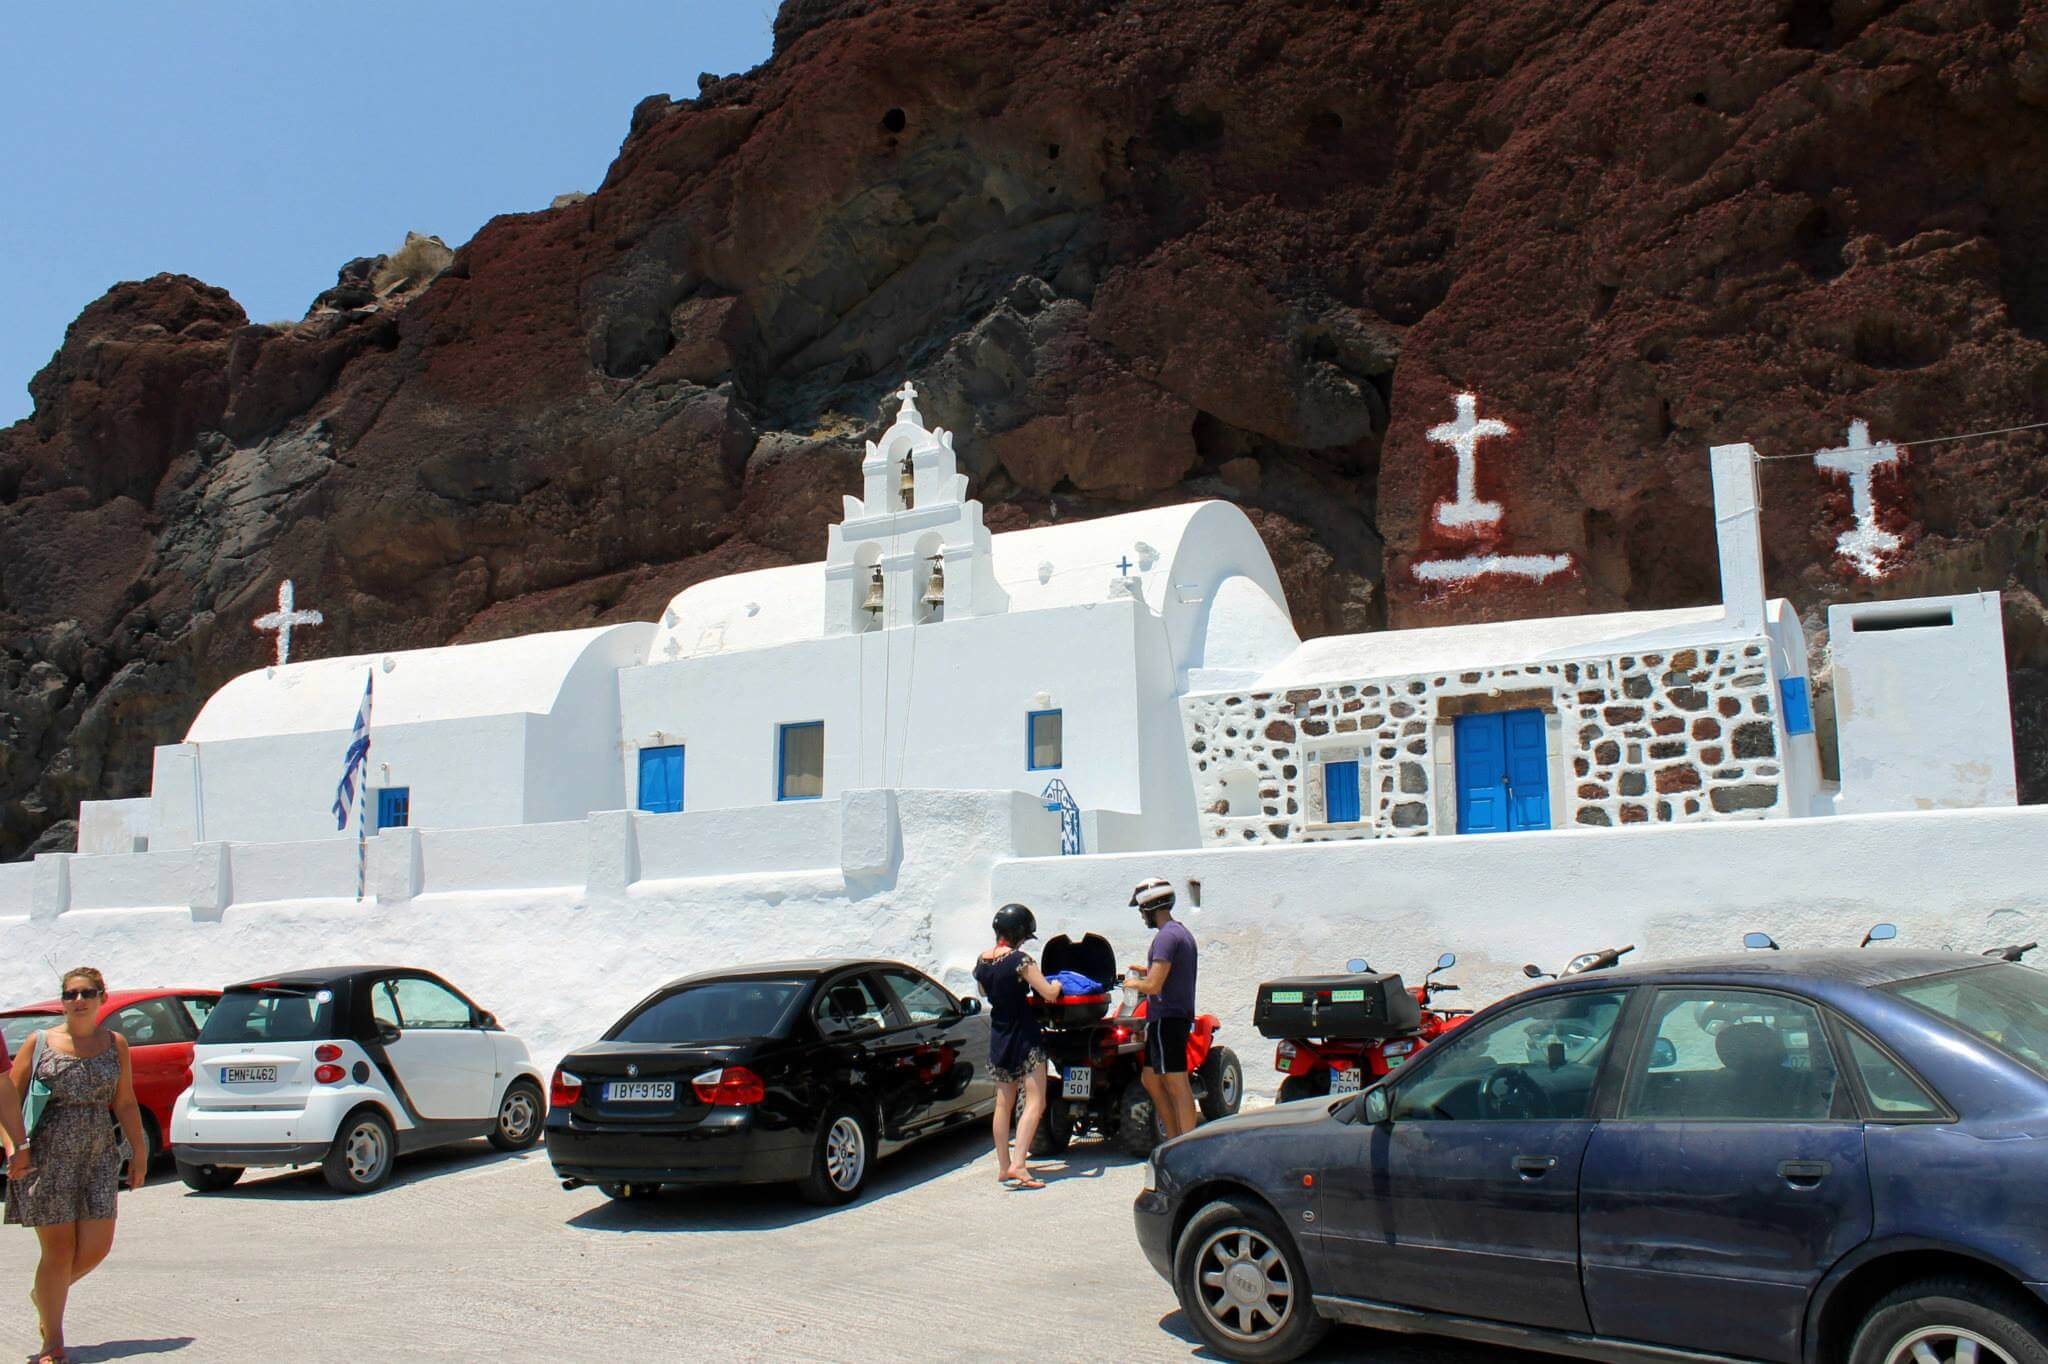 Agios Nikolaos church in Santorini, on the way to Red Beach. Taken by Kirstie.